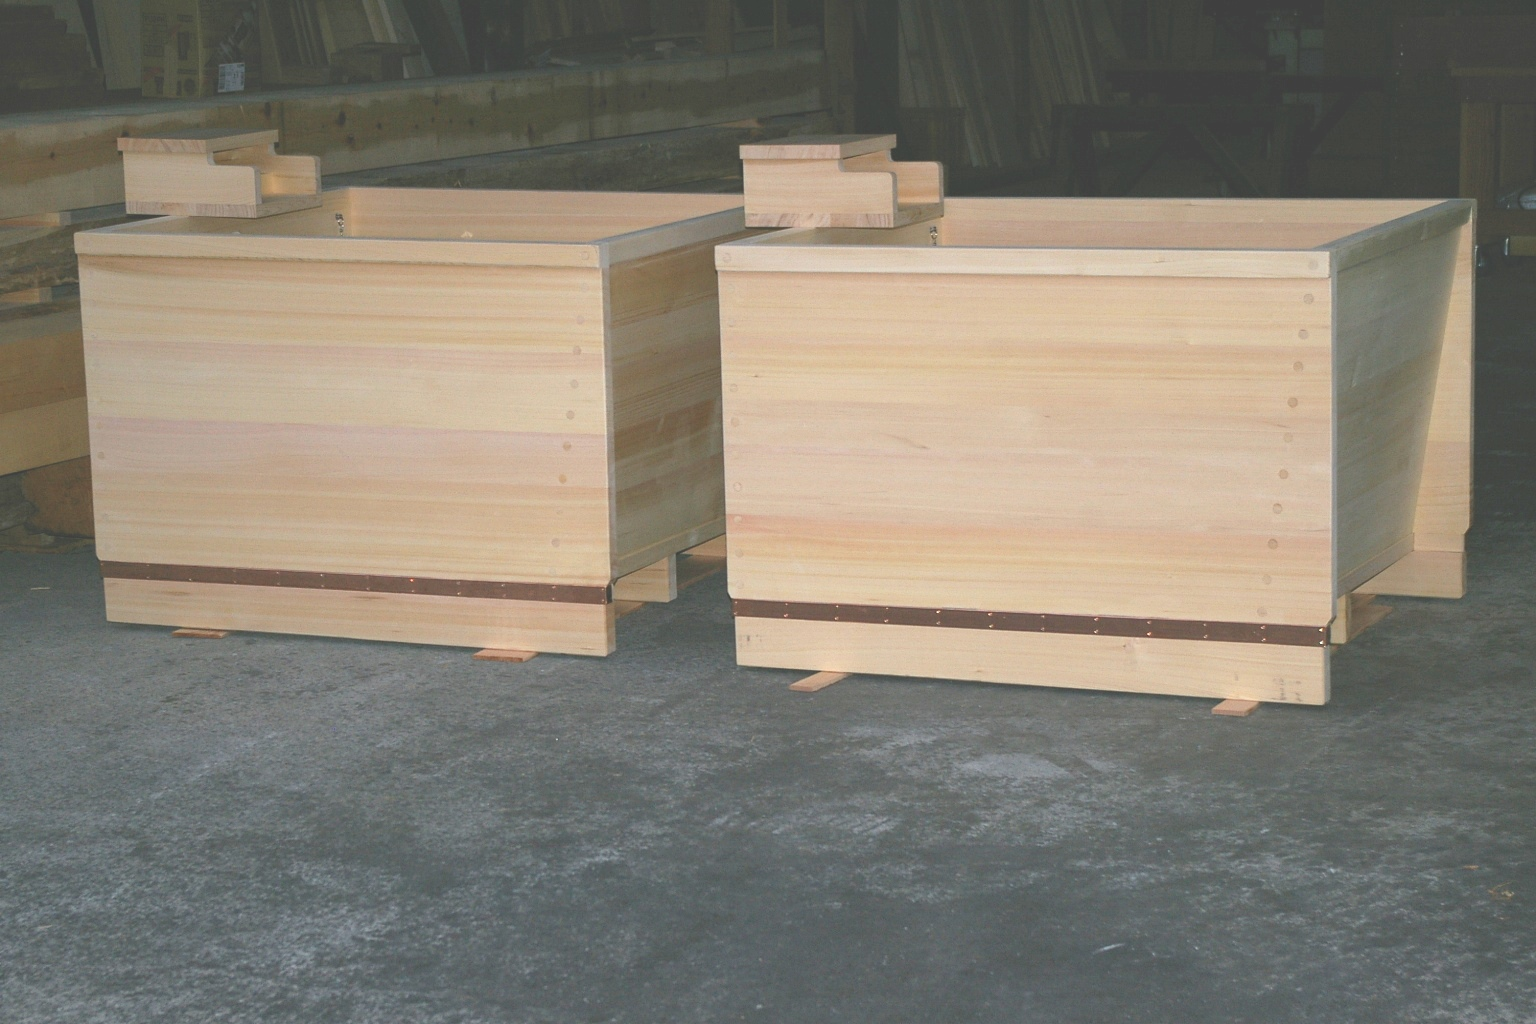 japanese hinoki wood soaking tub. Here are the specs for tubs  japanese Knotless hinoki wood bathtub sizes L1100mm x W1000mm H750mm ext dim 640mm deep ofuro soaking hot twin malaysia